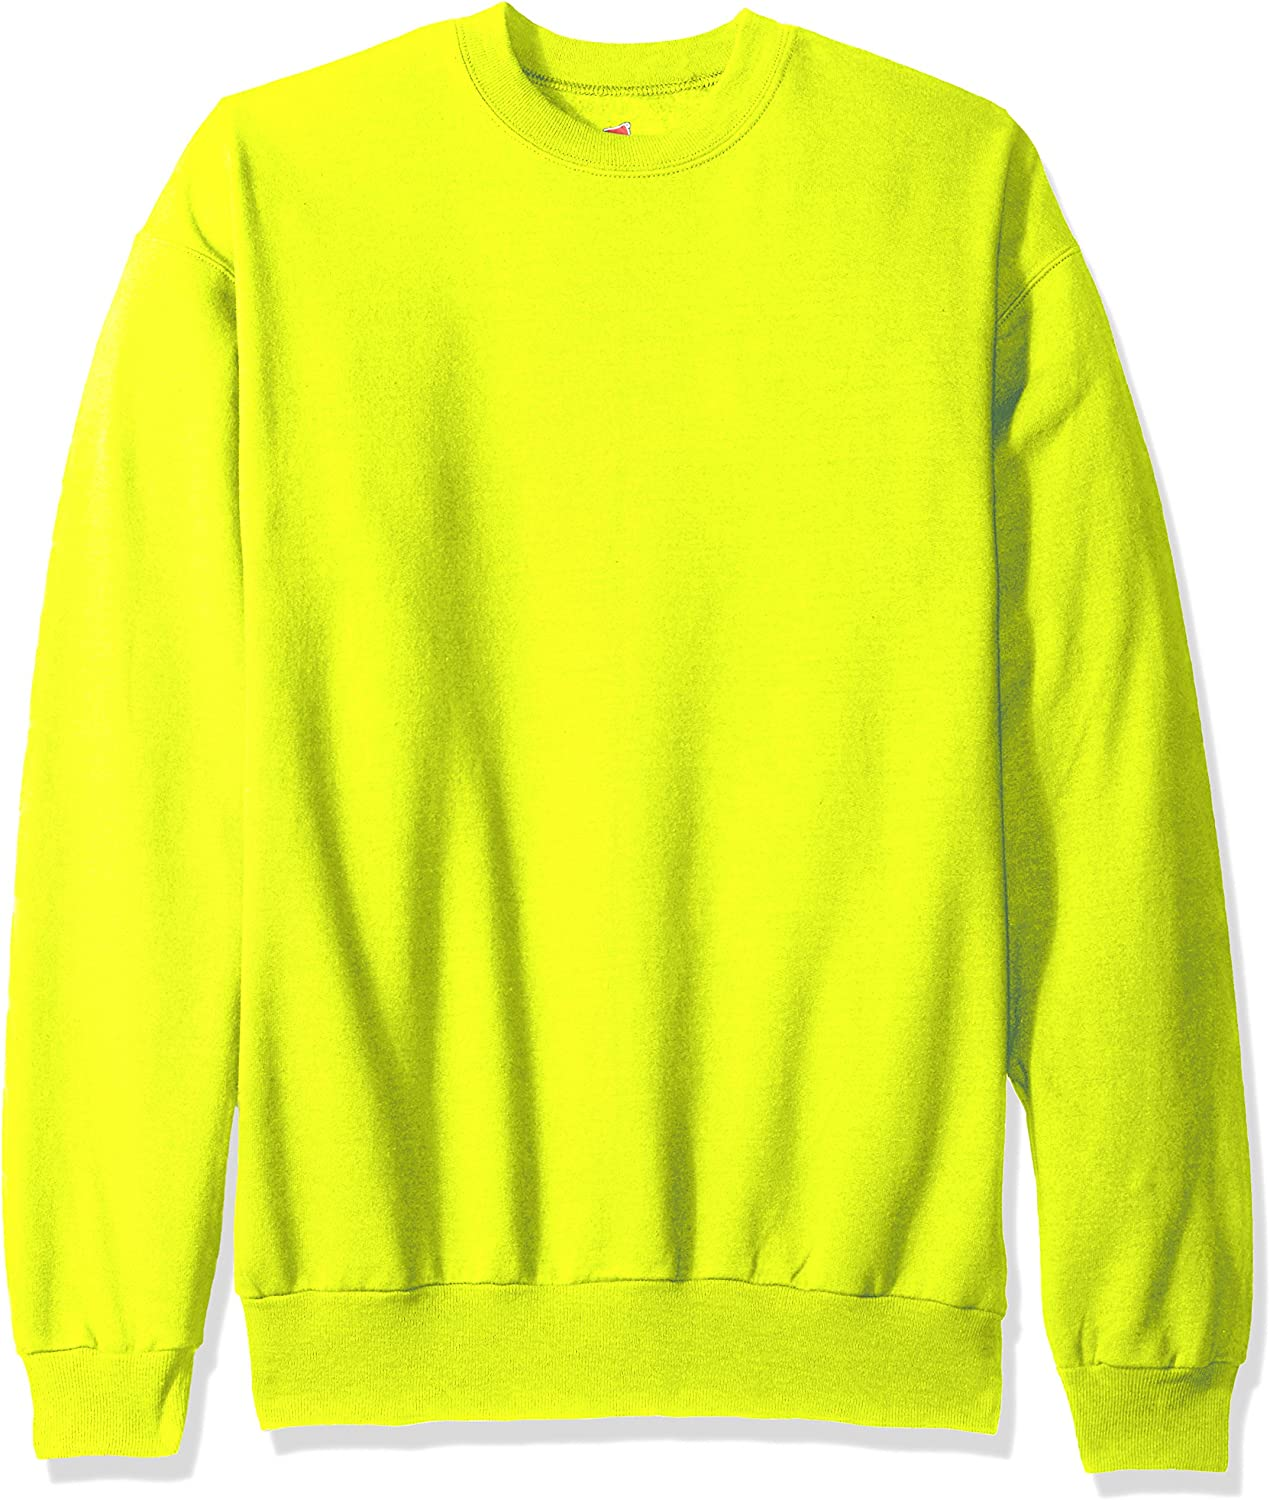 80s Sweatshirts and Sweaters Hanes Mens Ecosmart Fleece Sweatshirt $7.73 AT vintagedancer.com